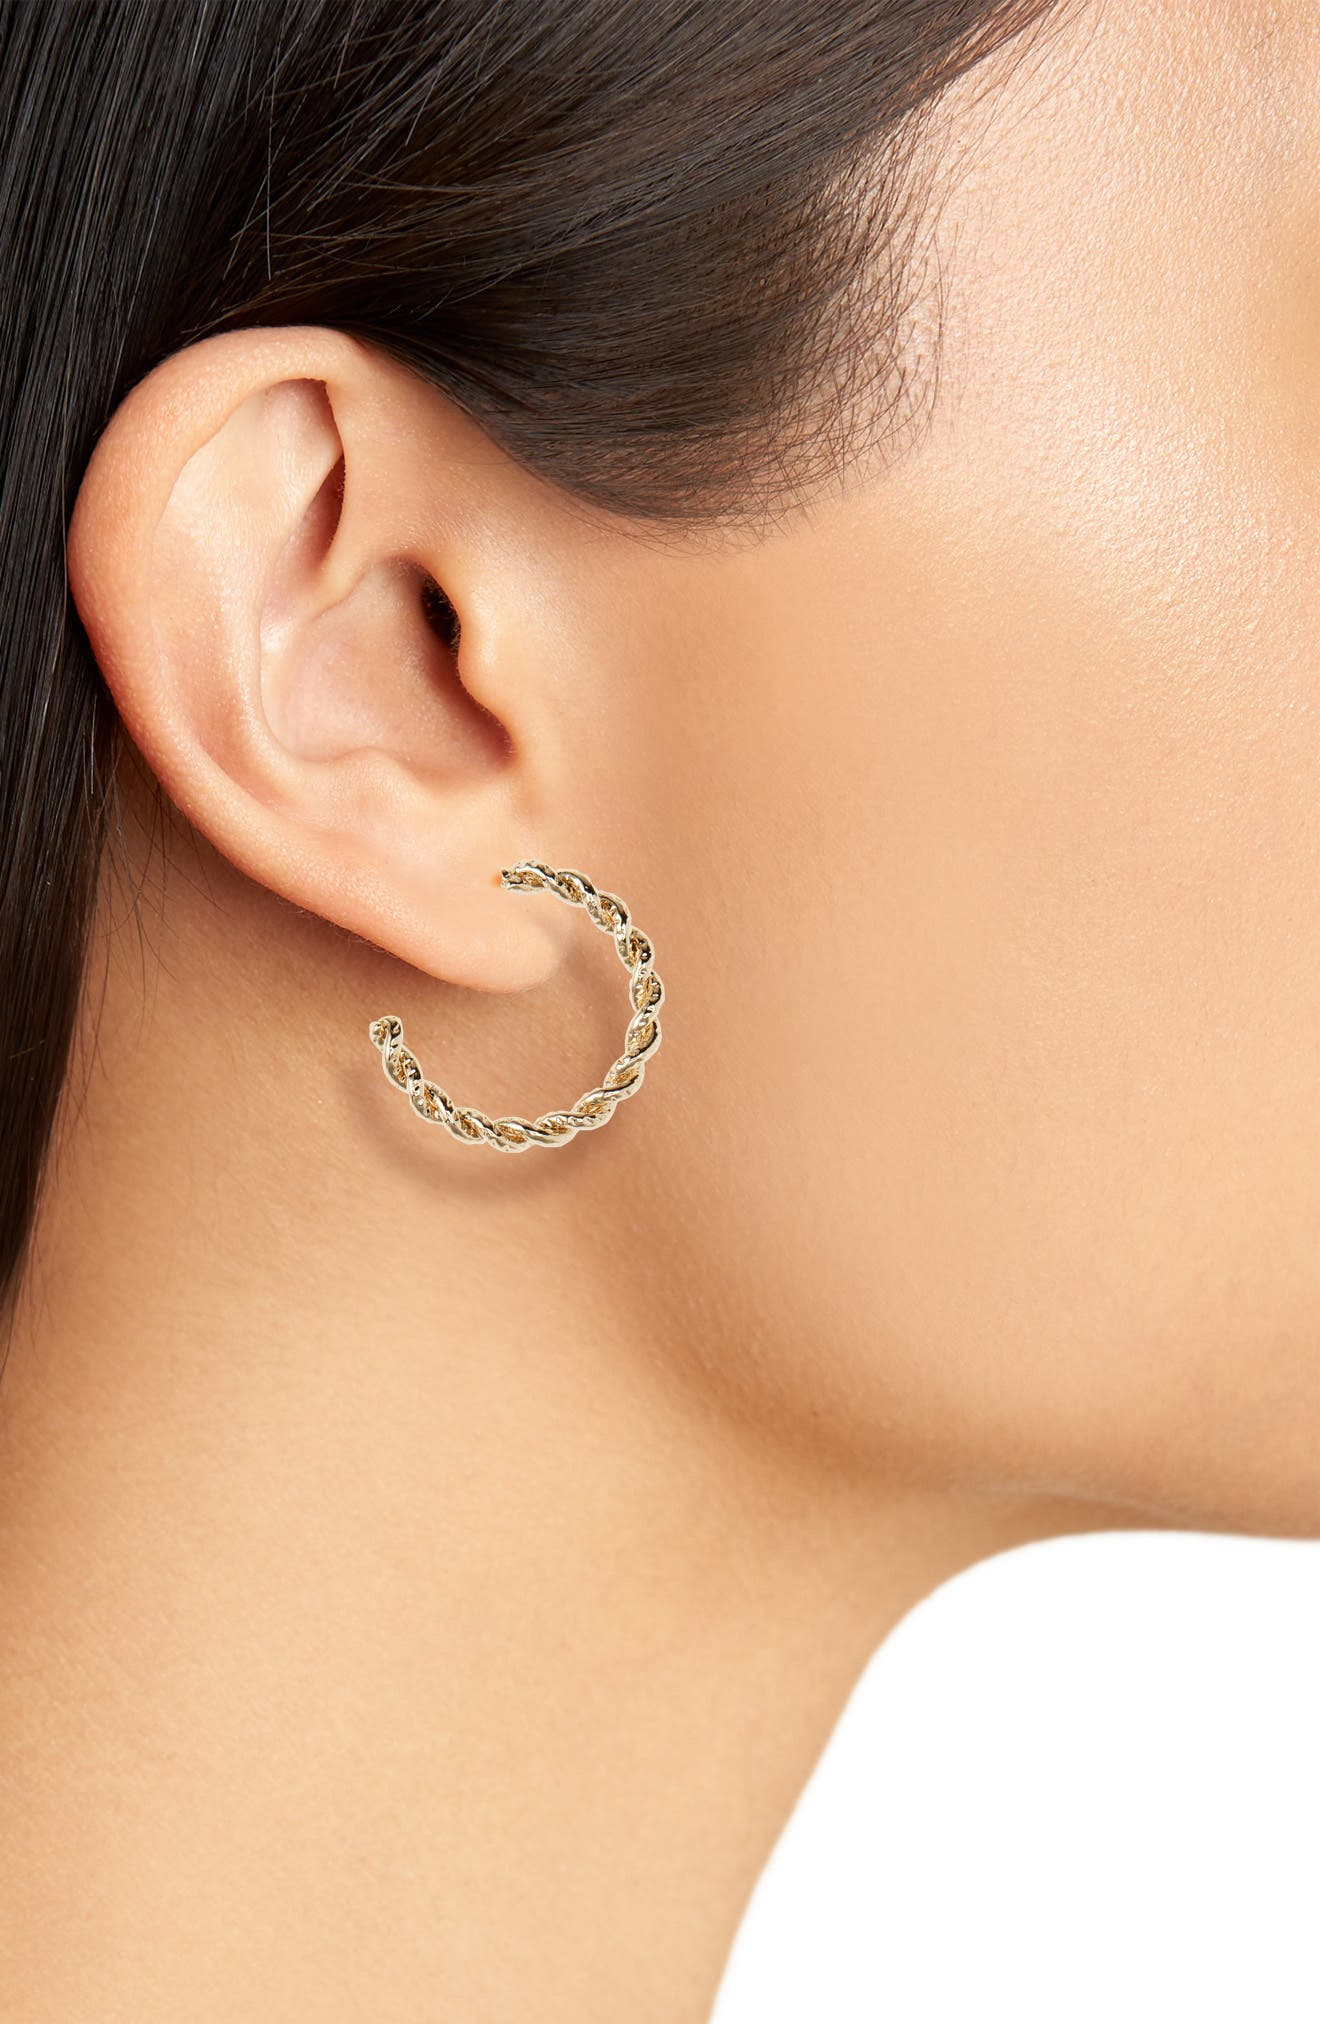 3-Pack Hoop Earrings,                             Alternate thumbnail 2, color,                             710